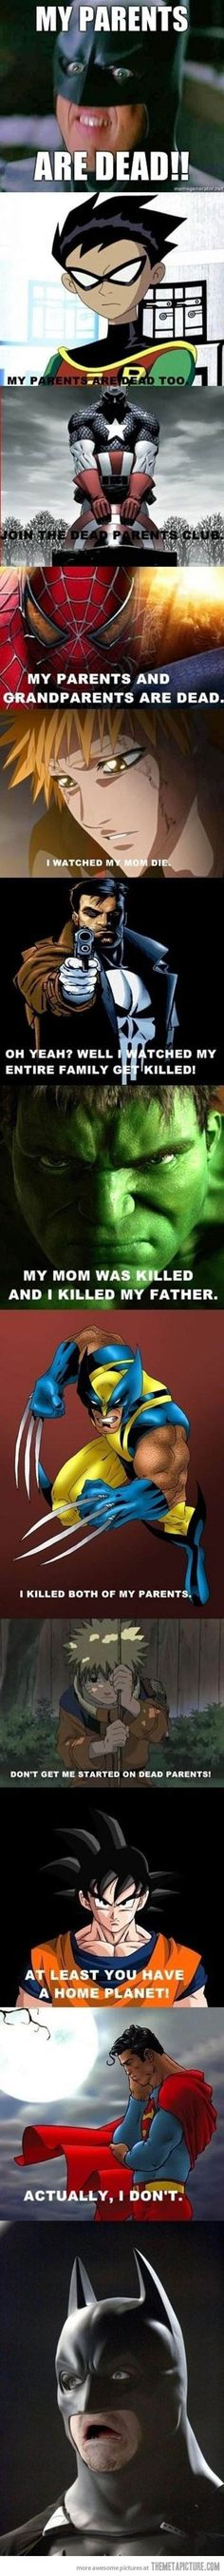 funny superheroes parents dead Batman